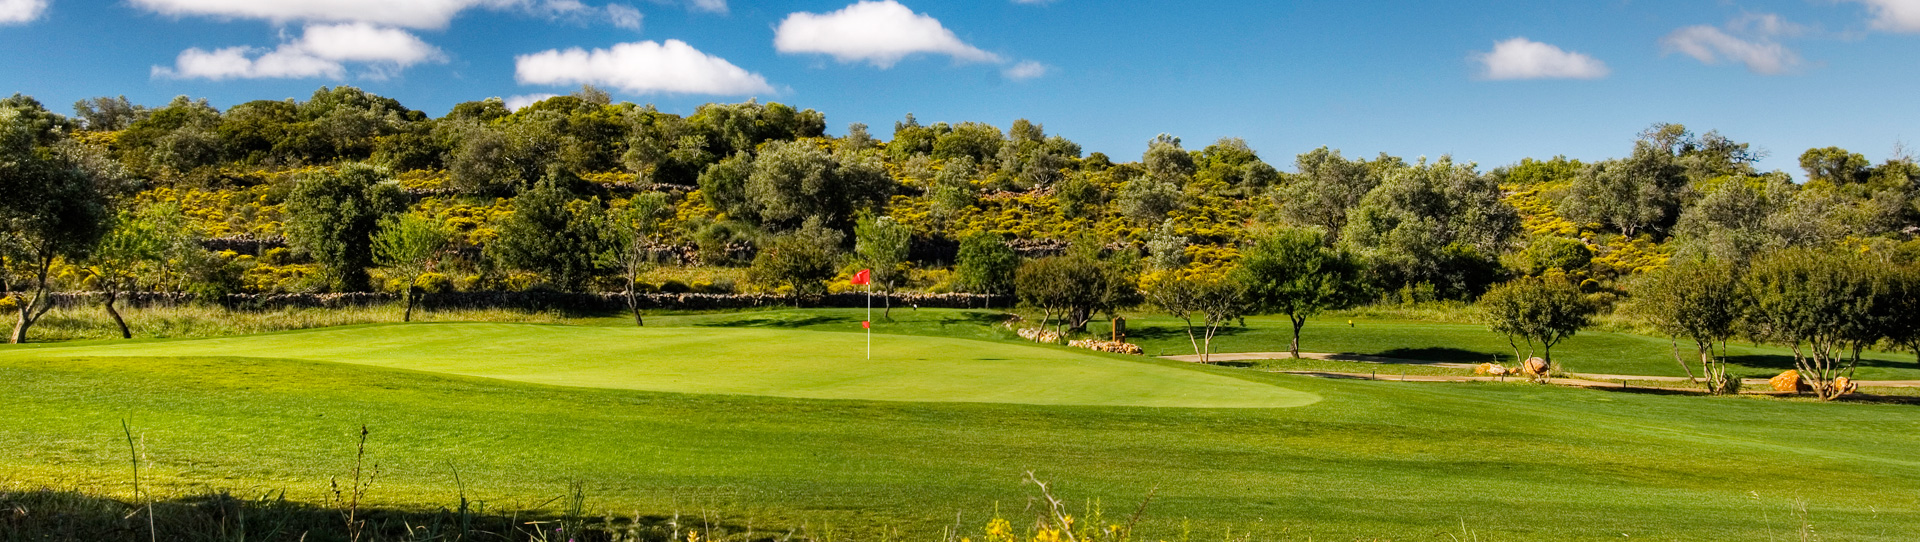 Silves Golf Course - Photo 2